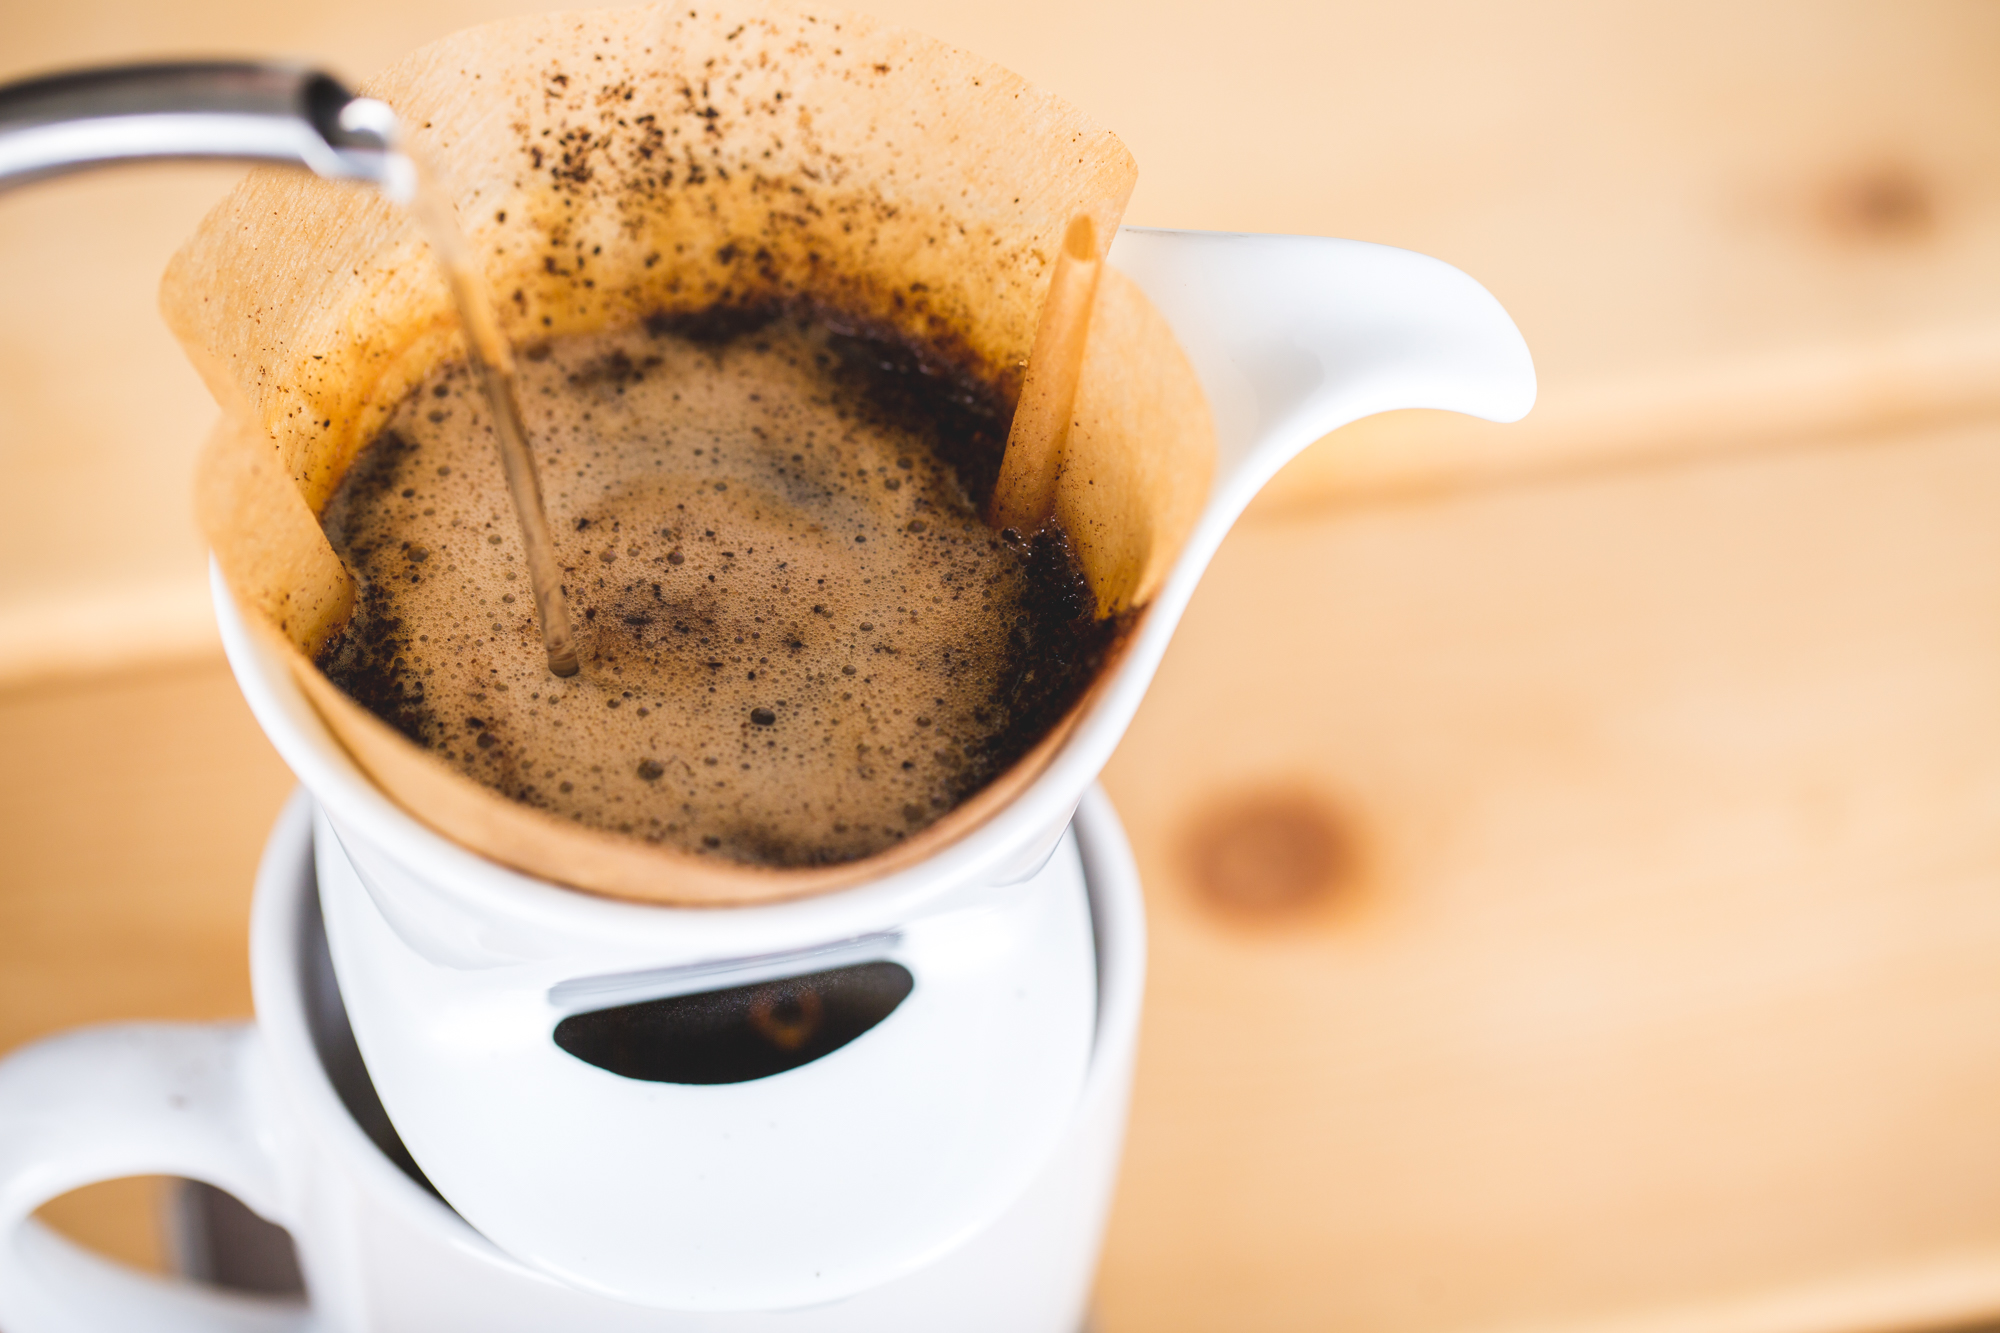 pour over brew pouring-1.jpg